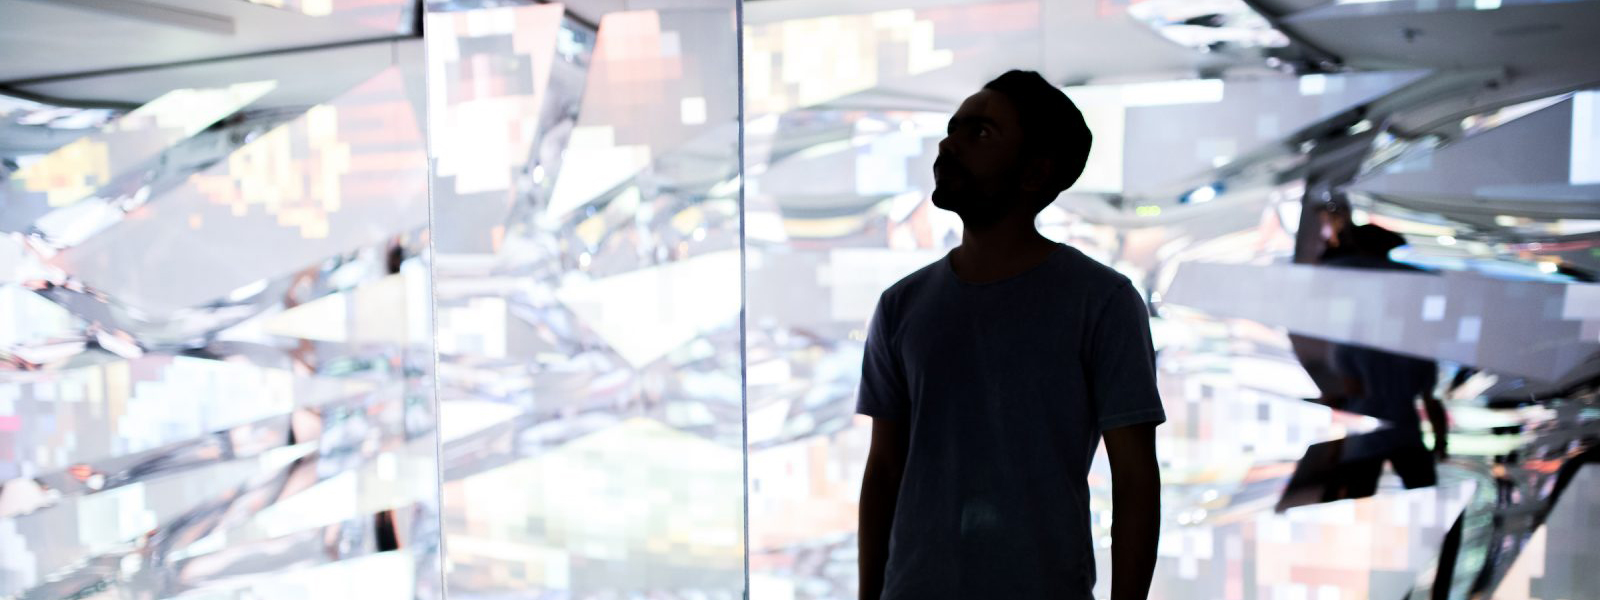 A man walks through a life-sized kaleidoscope powered by AI.